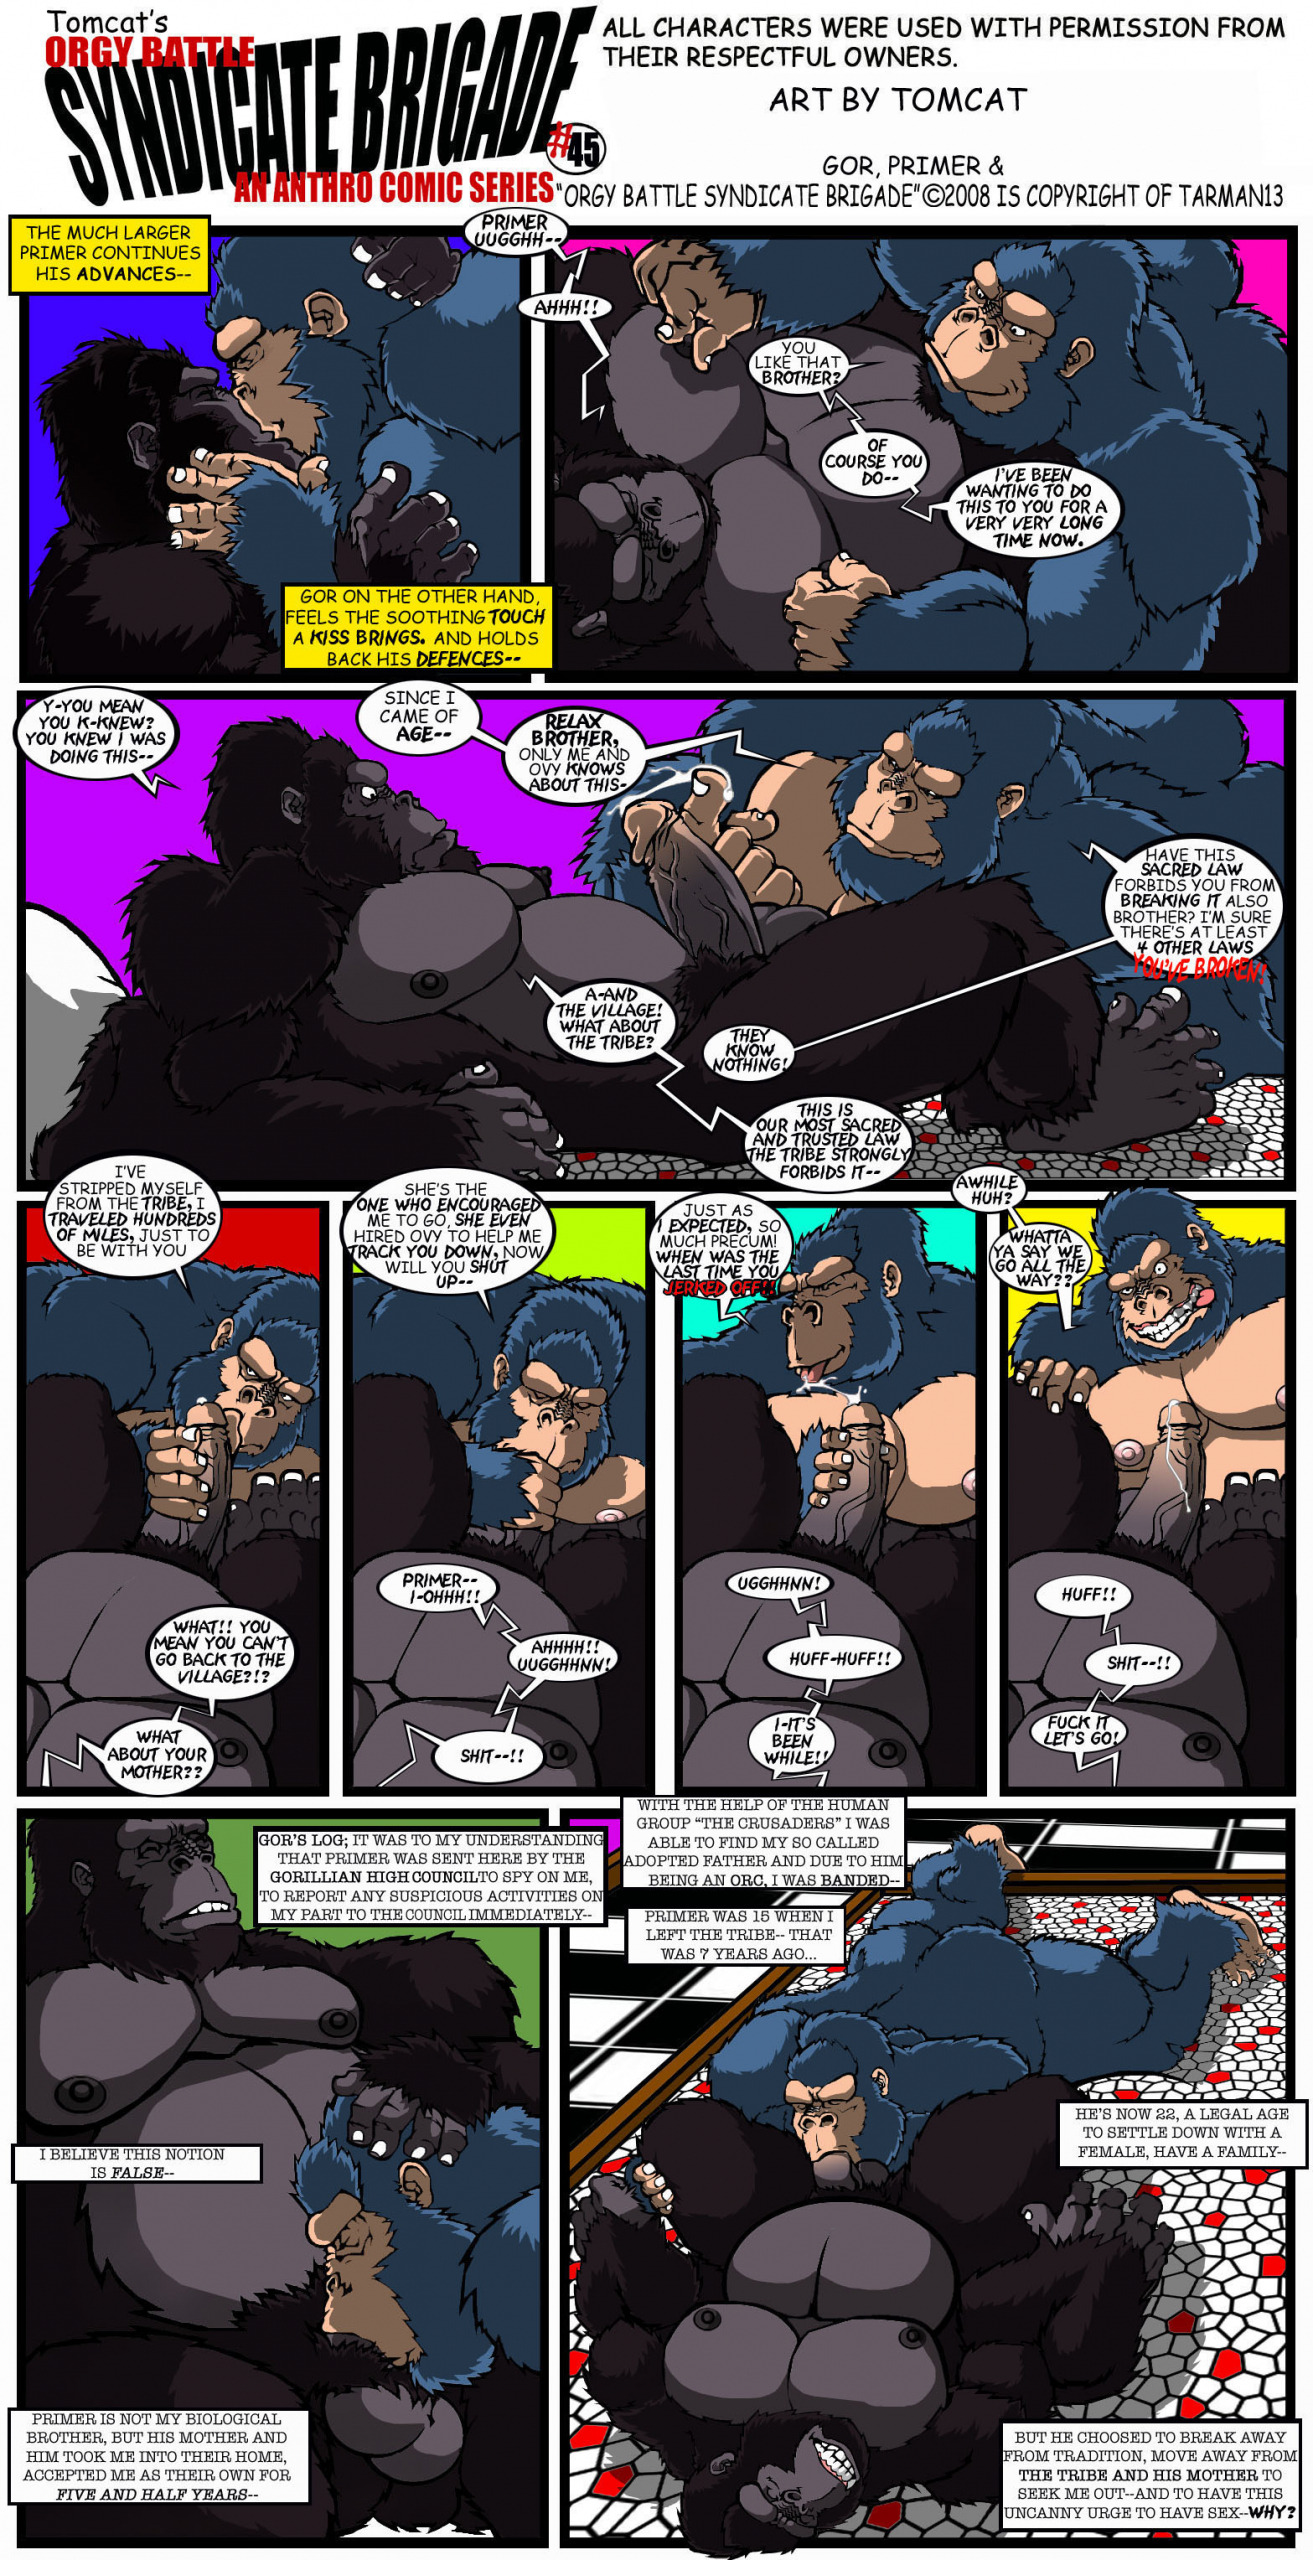 170300_Tomcat_syndicate_comic_page_45.1